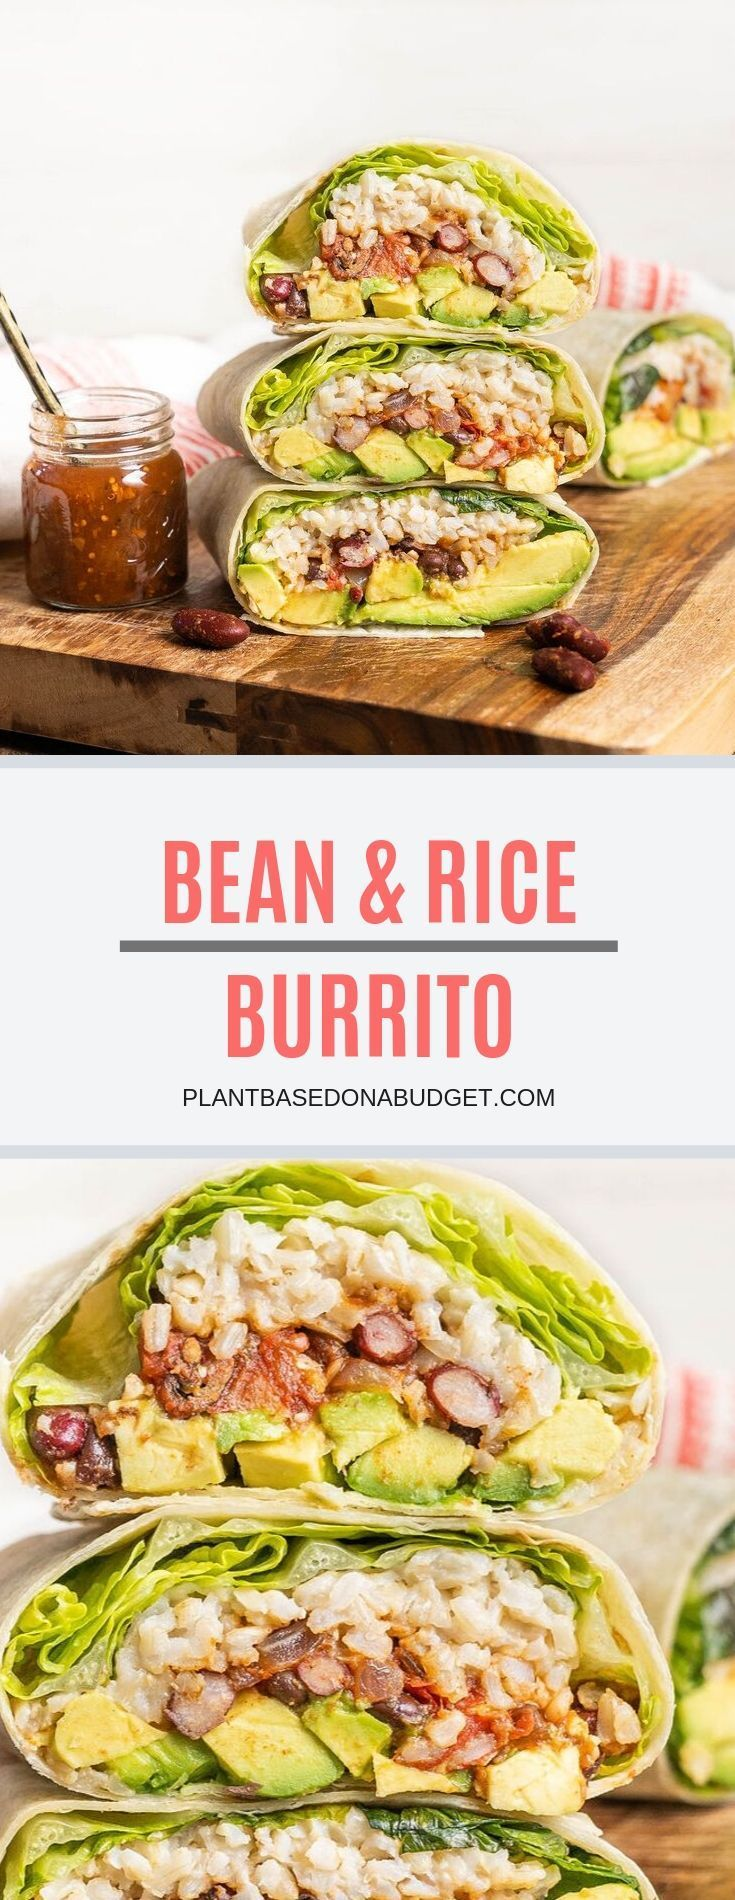 Bean and Rice Burrito | Healthy Mexican Recipe - Plant Based on a Budget